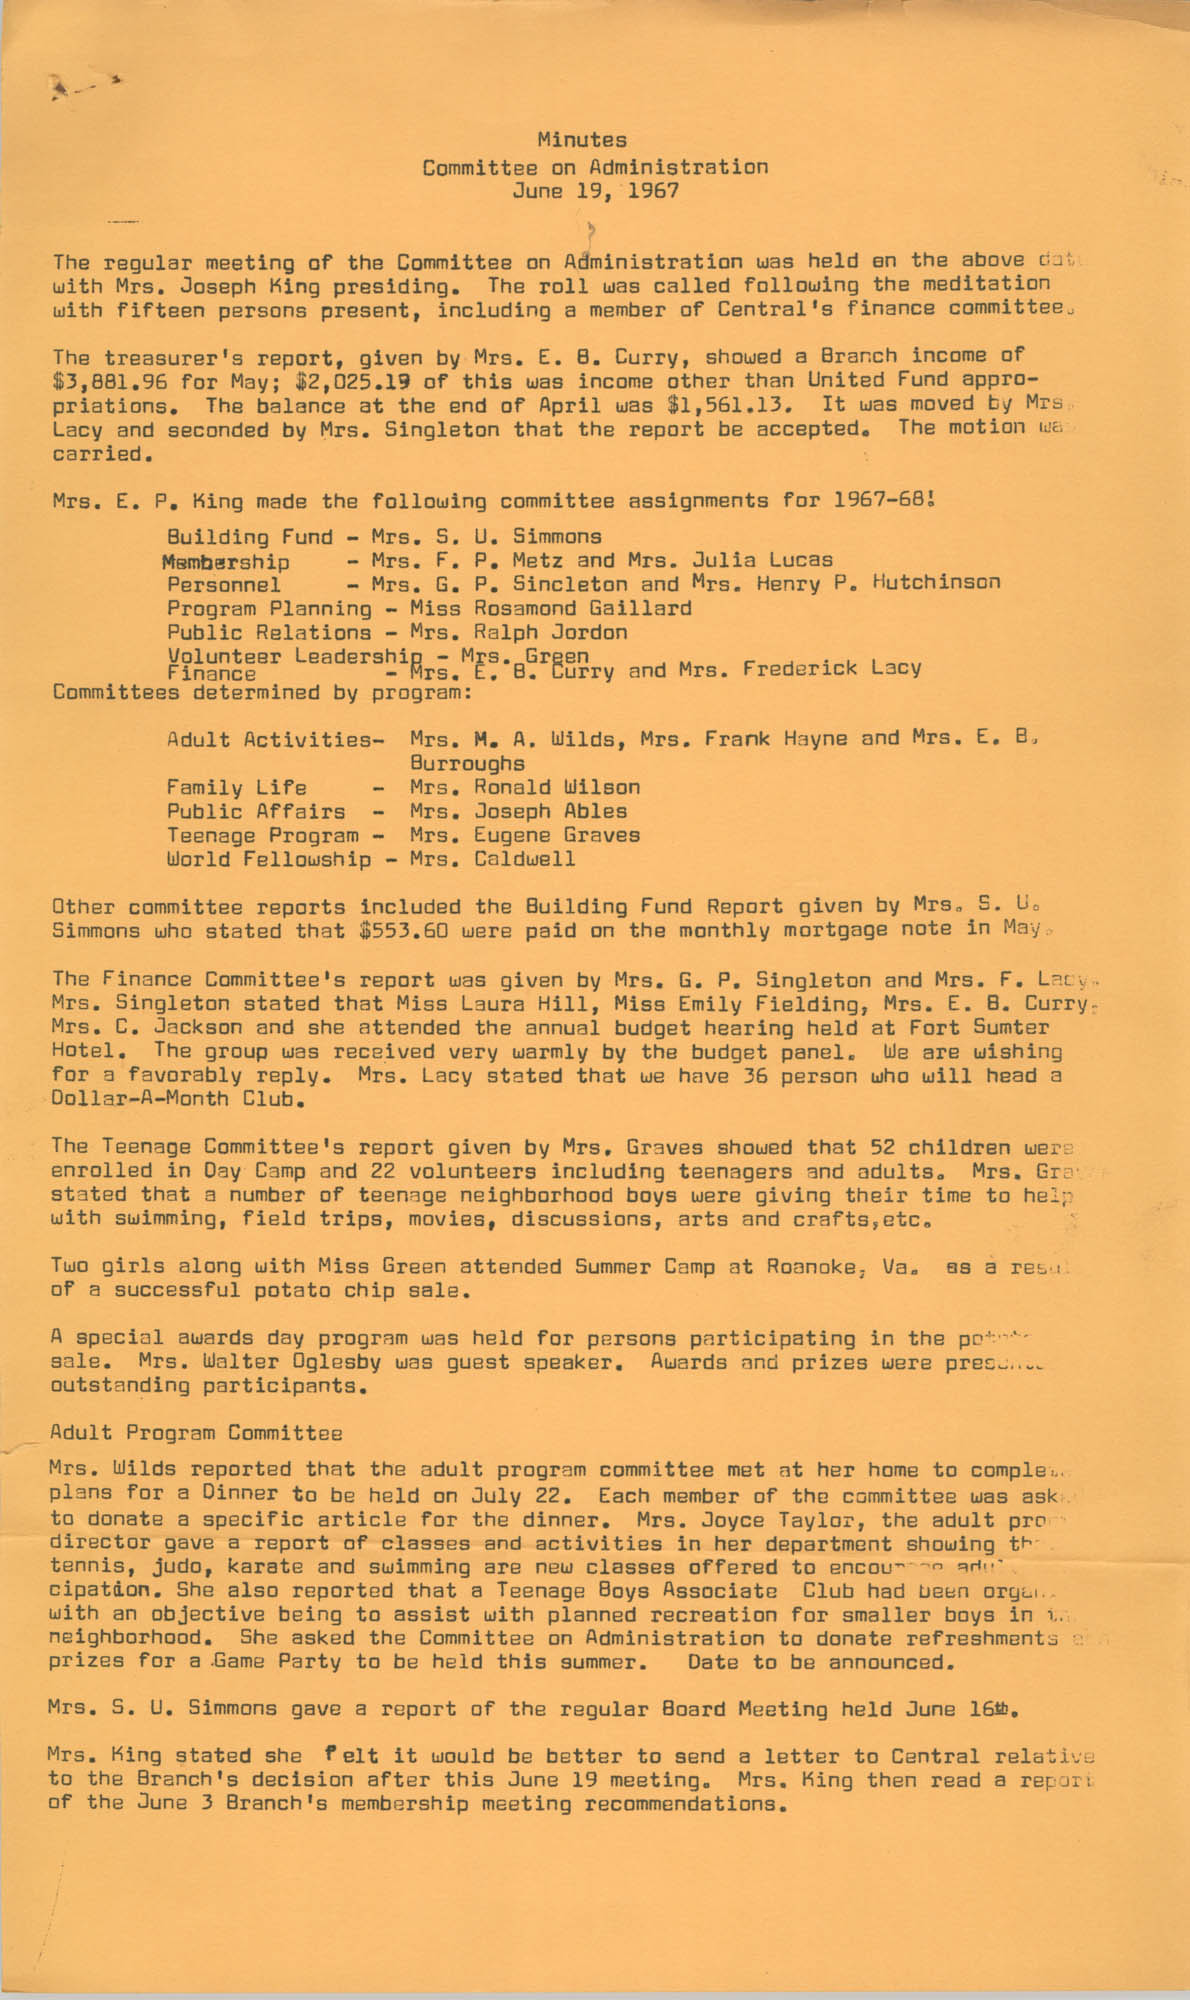 Minutes to the Committee on Administration, Coming Street Y.W.C.A., June 19, 1967